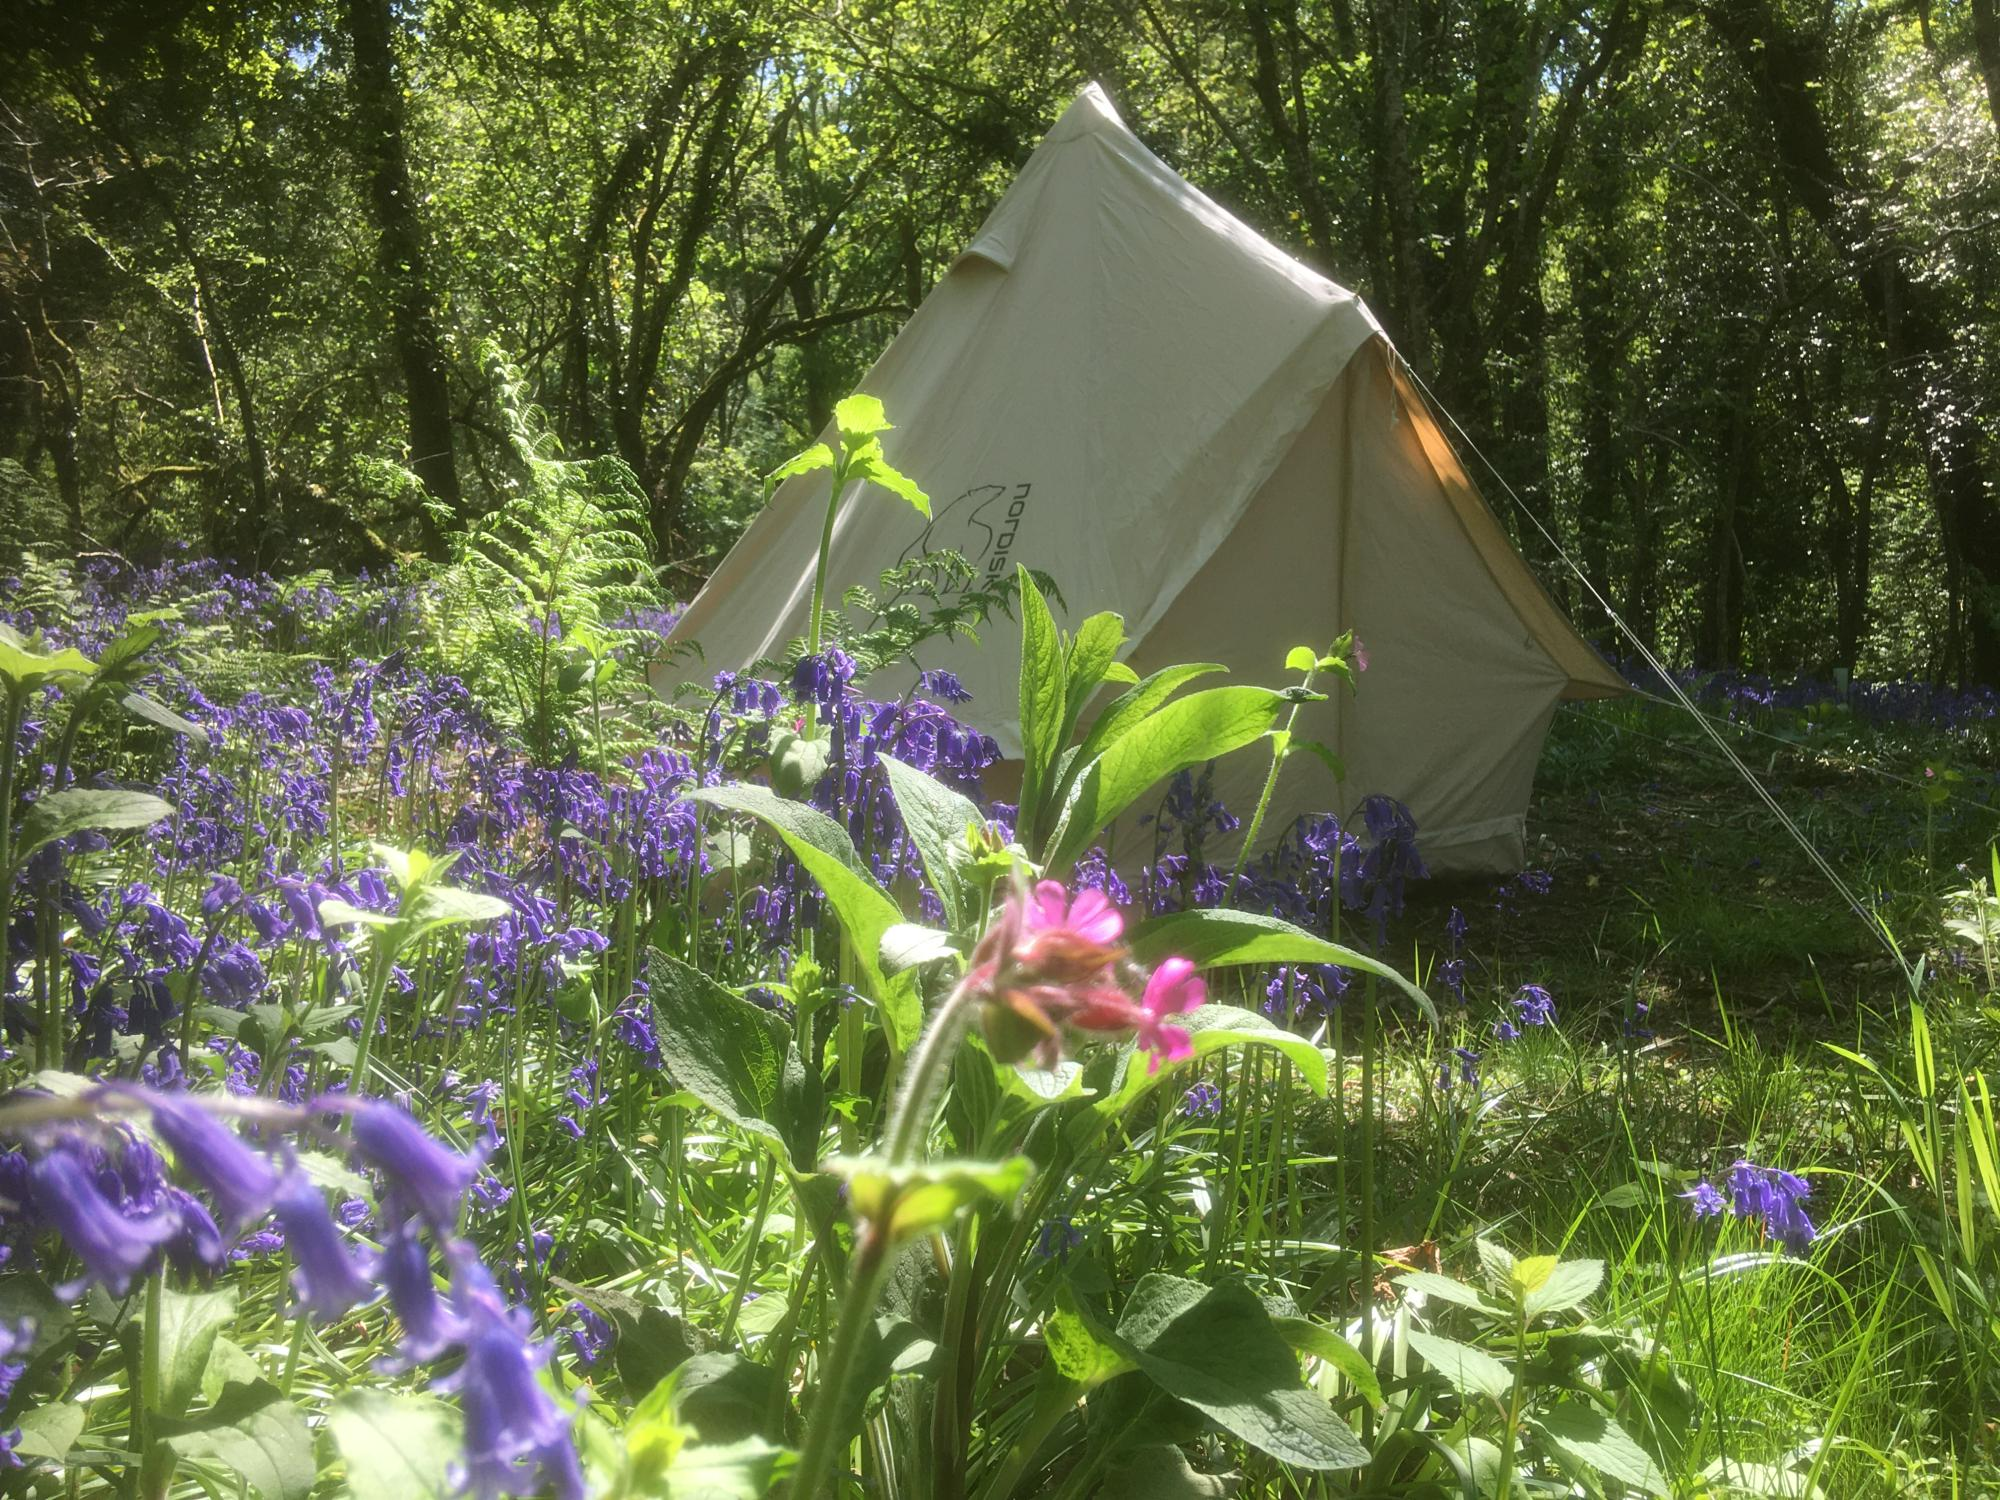 Campsites in South Wales – I Love This Campsite